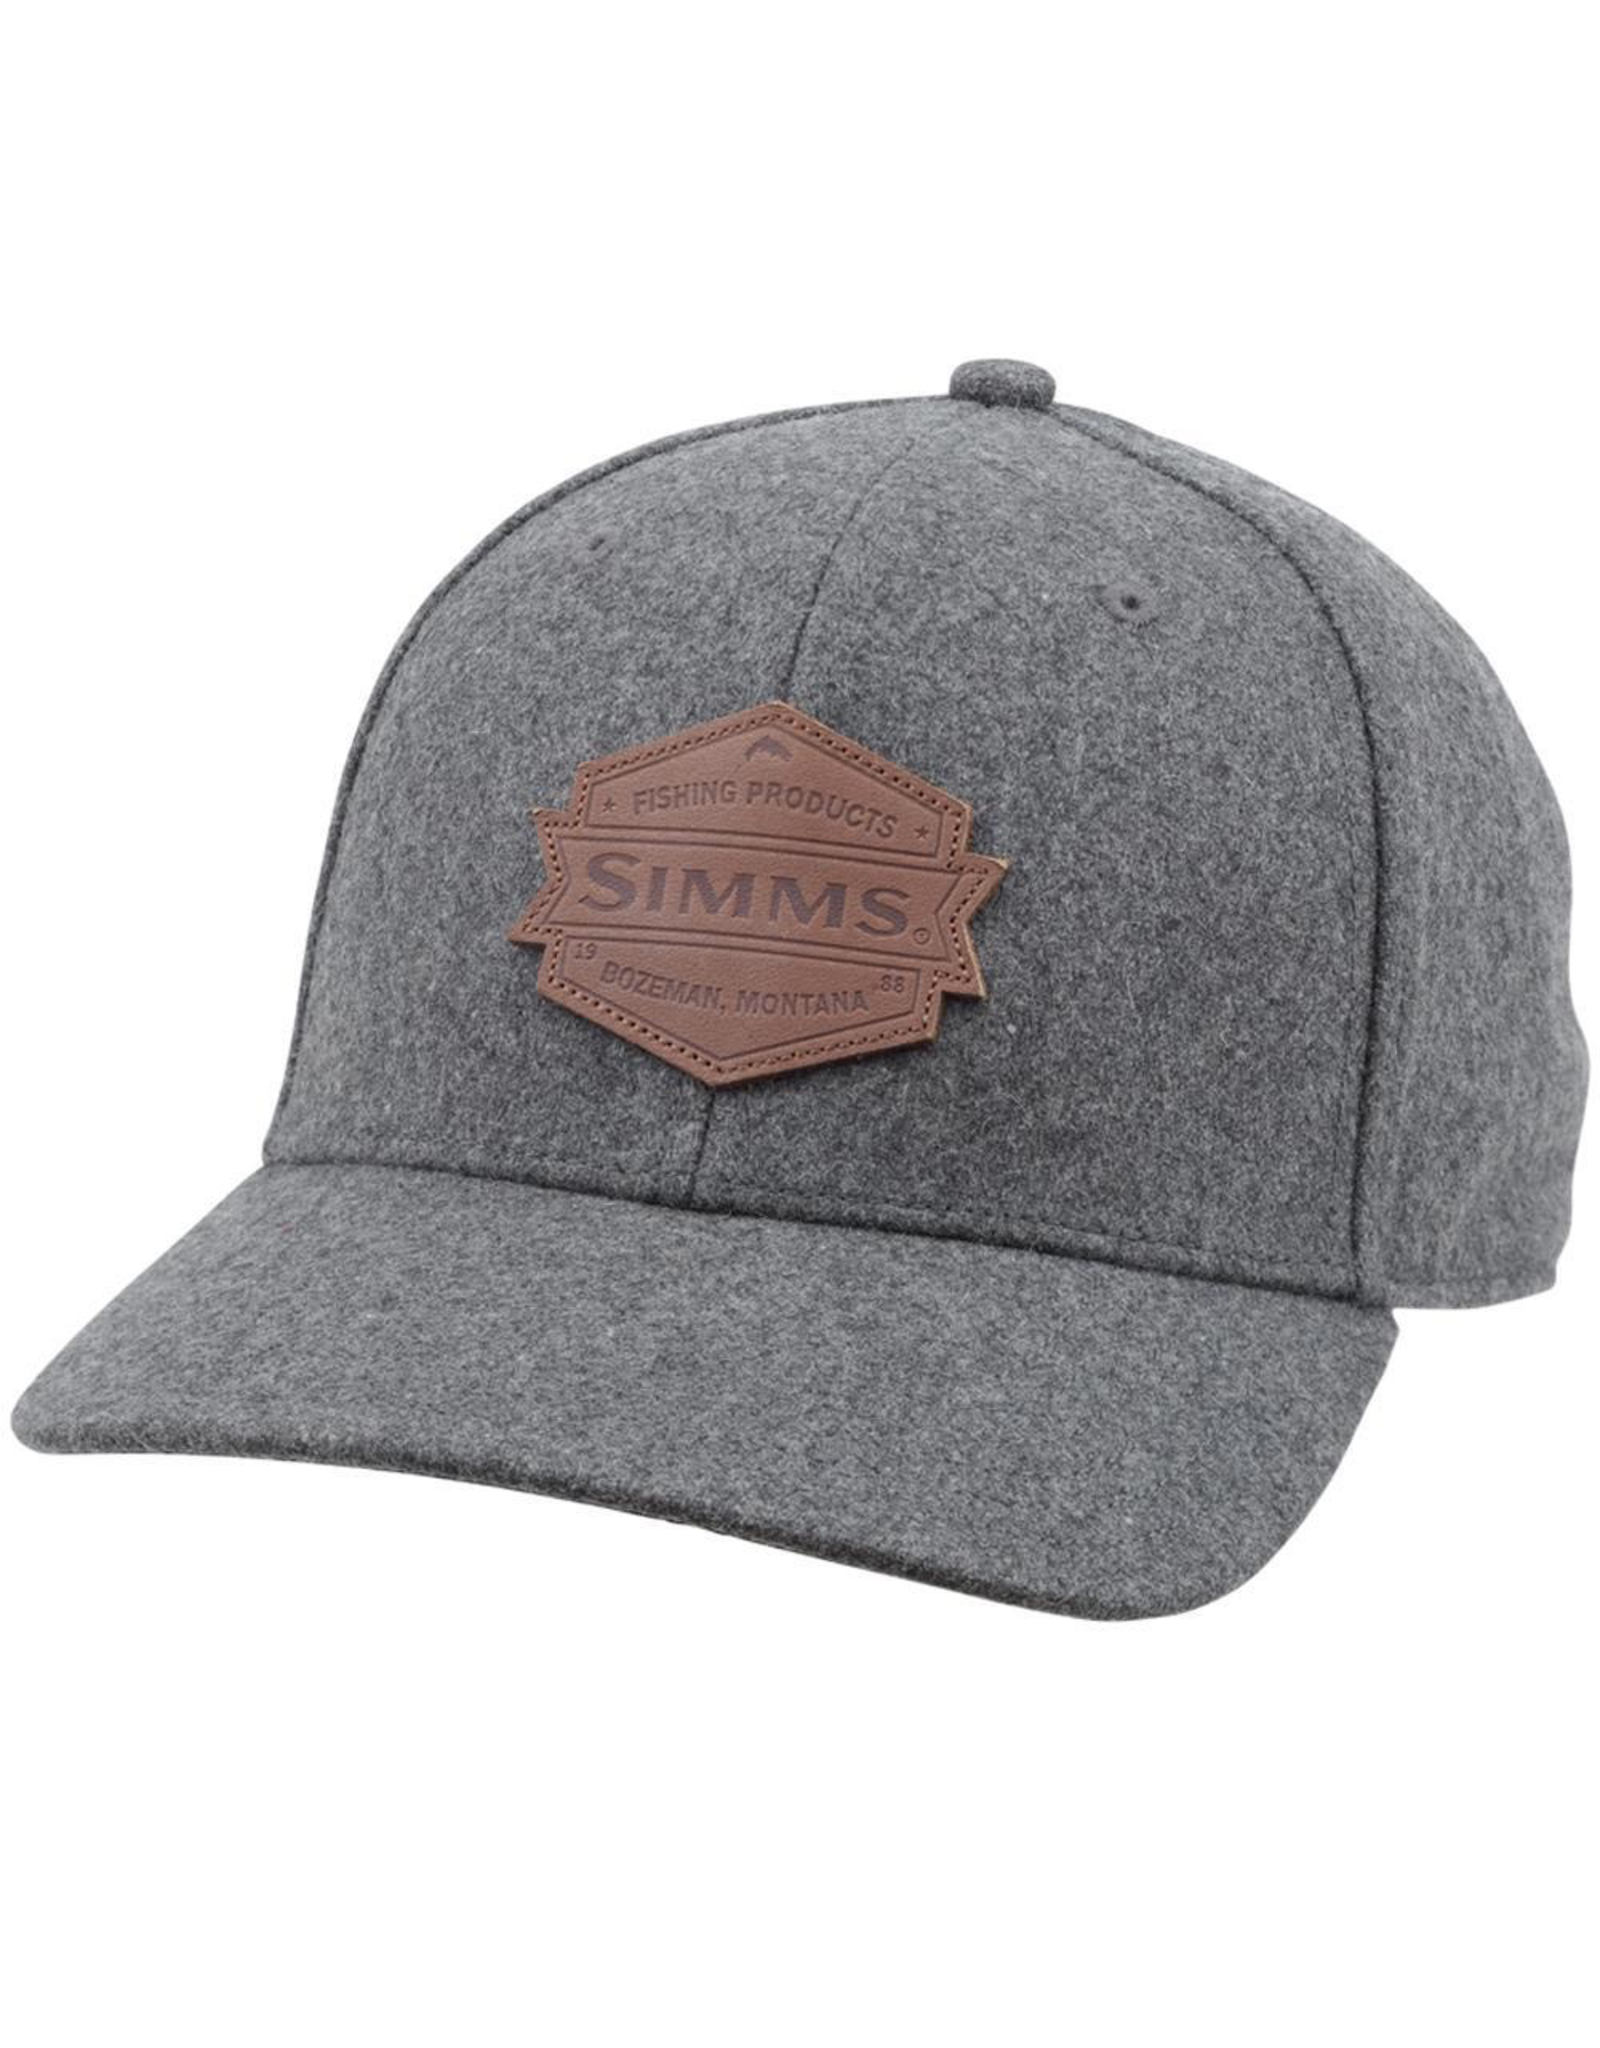 The shoulder season cap that offers a mid-crown fit, pre-curved brim, and a wool blend knit for boat to bar style.